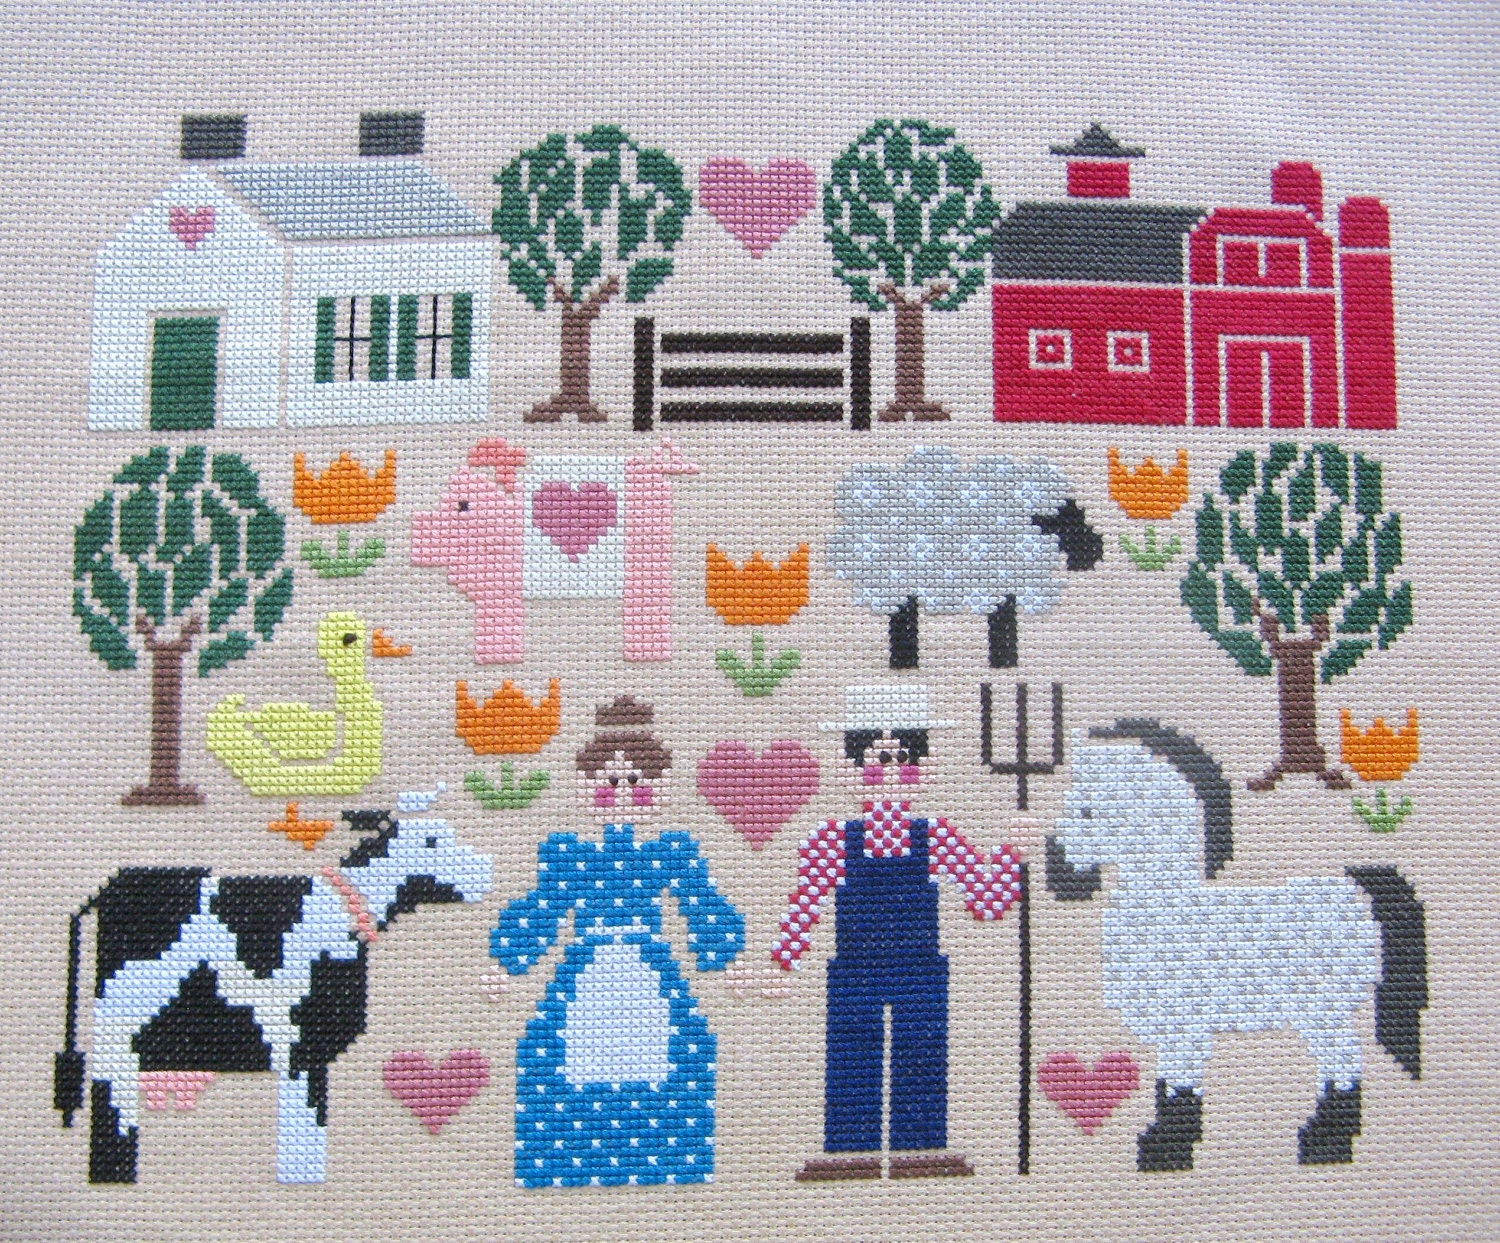 "Counted Cross Stitch ""Old MacDonald's Farm"" Embroidery Floss Needle Craft Handmade - FamtasticCrafts"